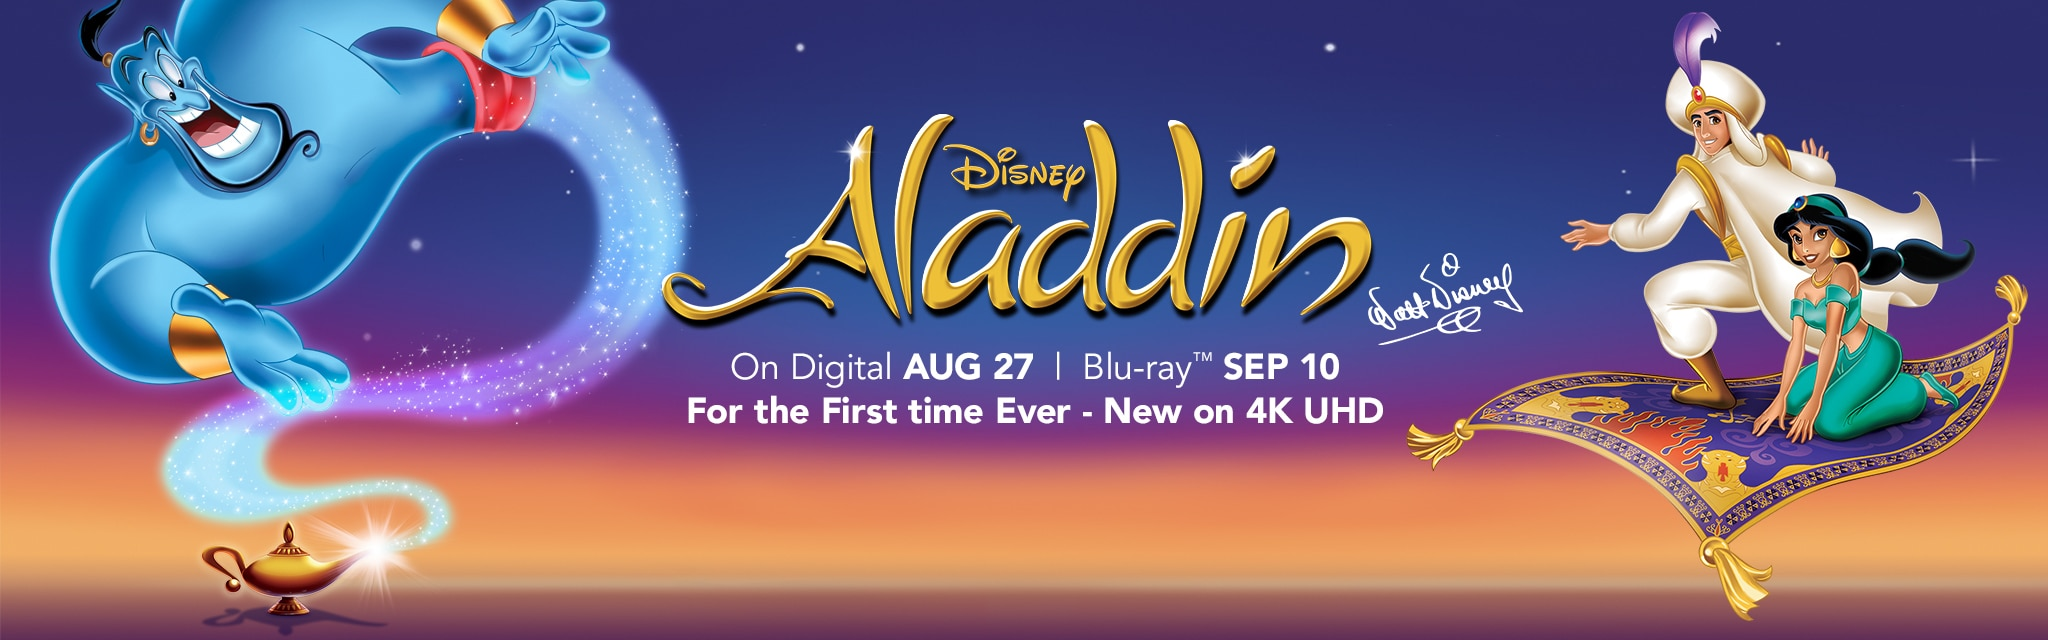 Disney Aladdin on Digital Aug. 27 and Blu-ray Sept. 10. For the First time Ever - New on 4K UHD.